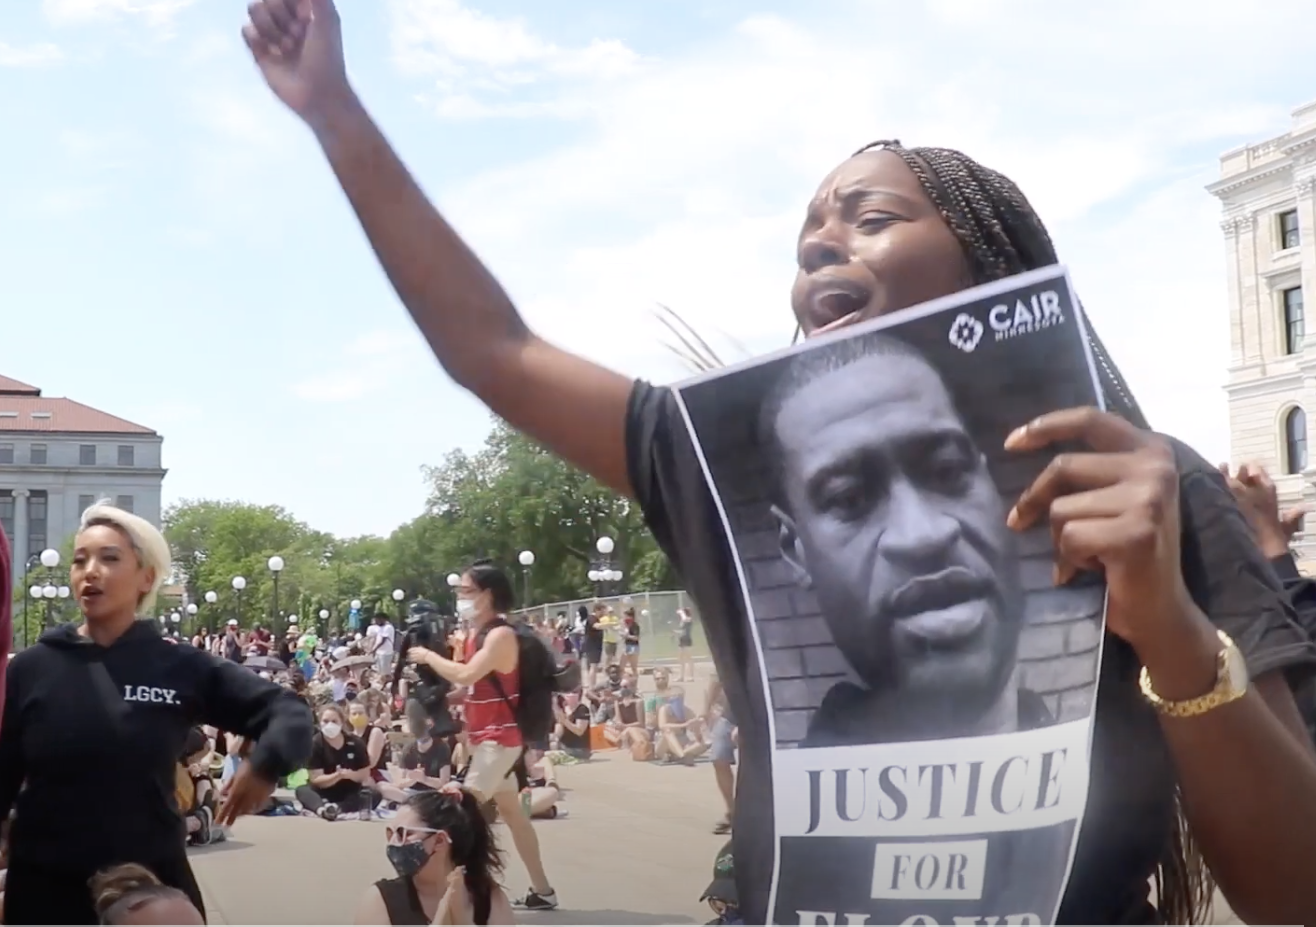 Young people gathered at the Capitol in May to demand justice for George Floyd, who died at the hands of Minneapolis Police. (ThreeSixty Journalism/Aaliyah Demry)